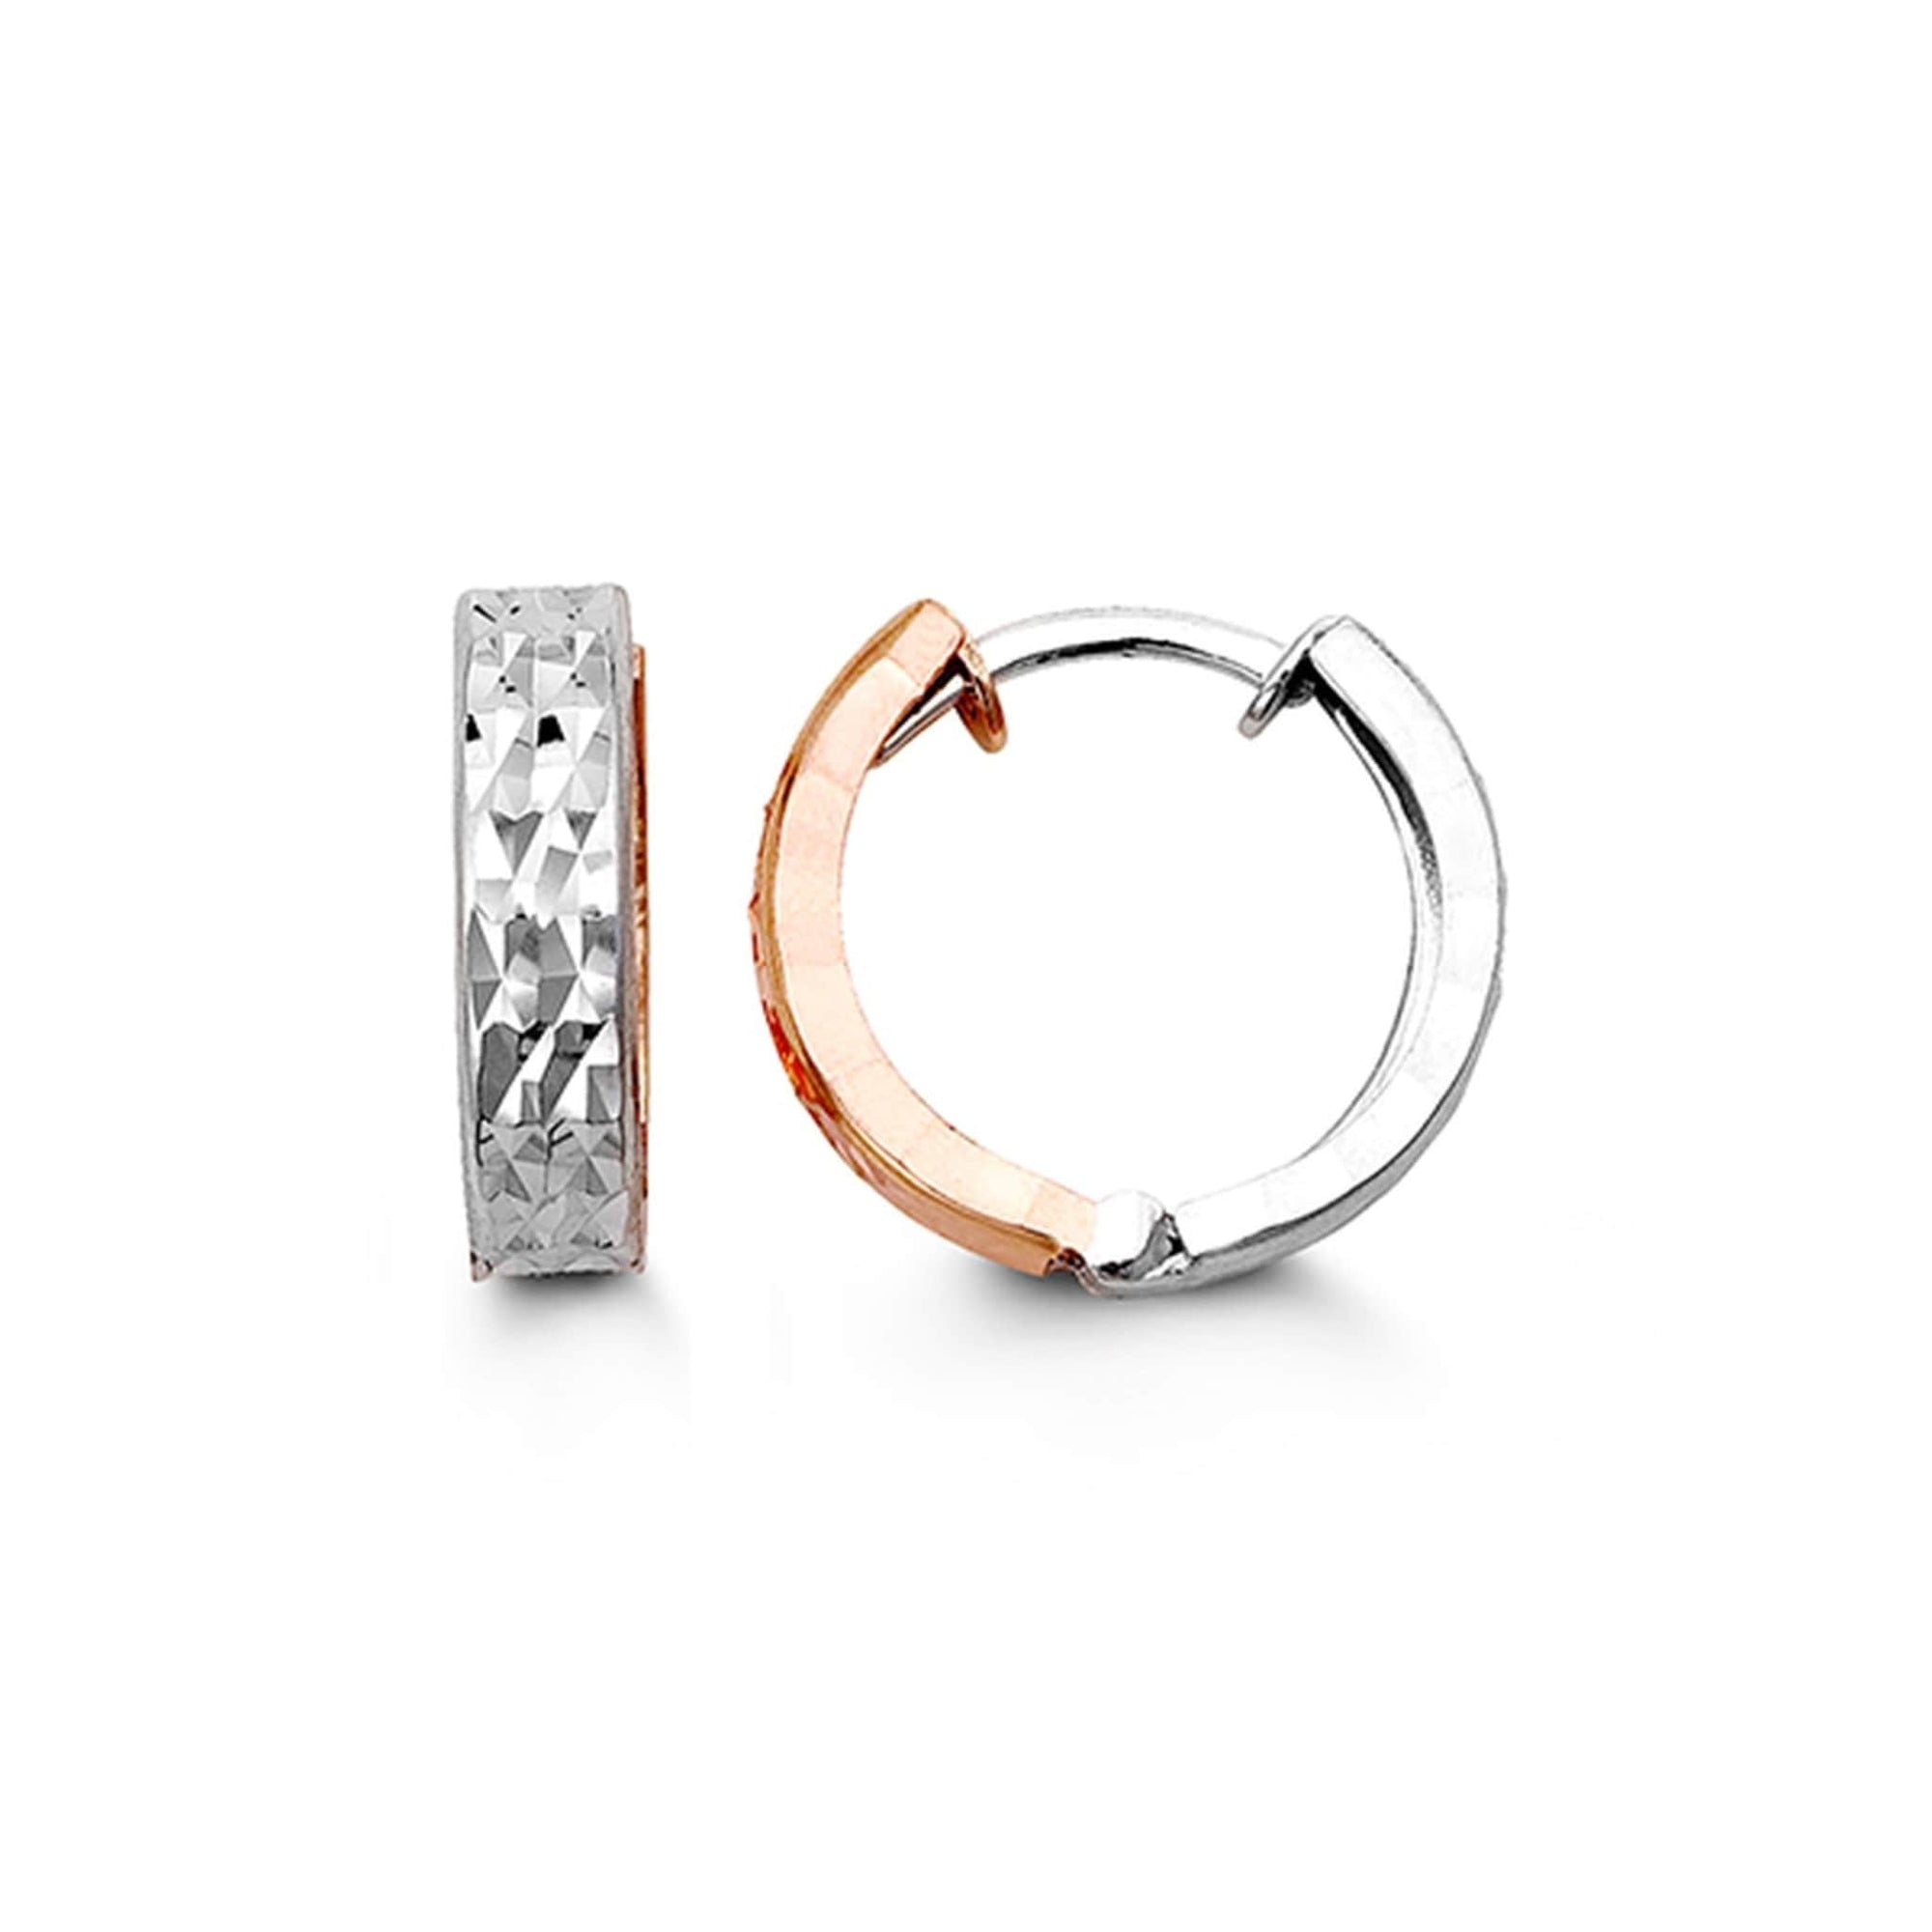 10K Rose & White Gold Huggie Hoop Earrings at Arman's Jewellers